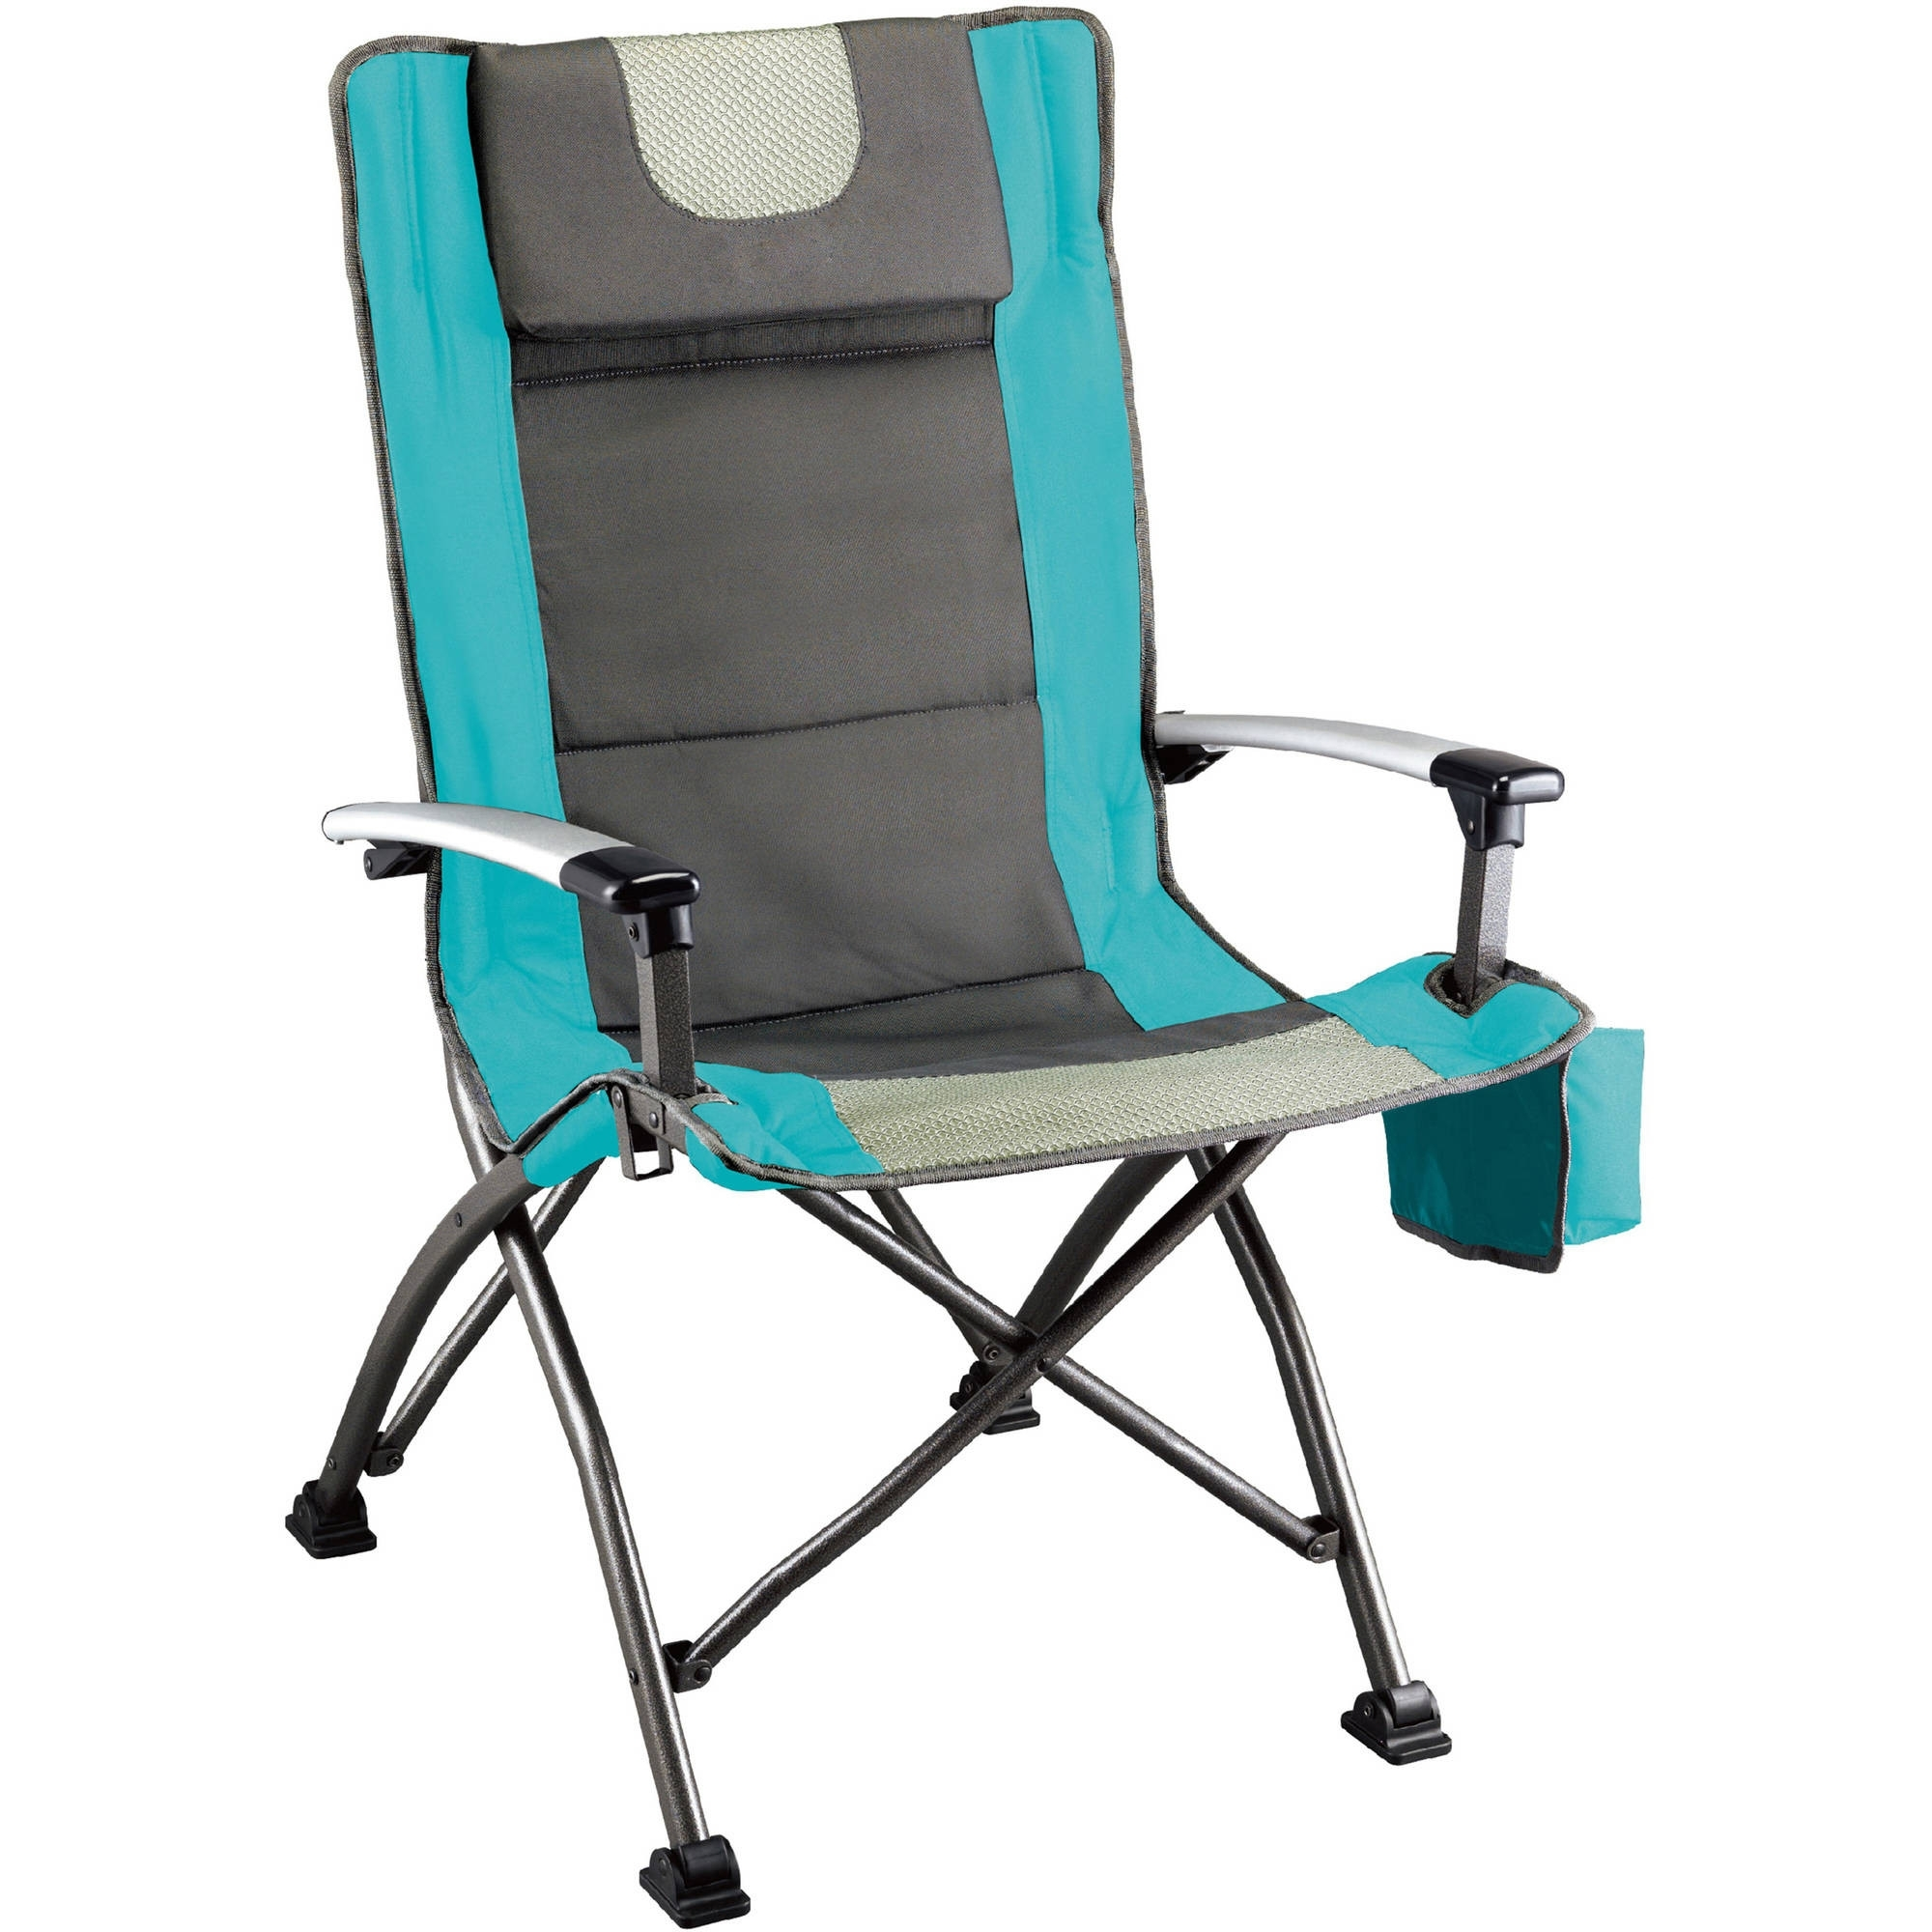 Heavy Duty Chaise Lounge Chairs With Well Known Lounge Chair : Chairs Patio Chairs For Large People Lounge Chairs (View 10 of 15)